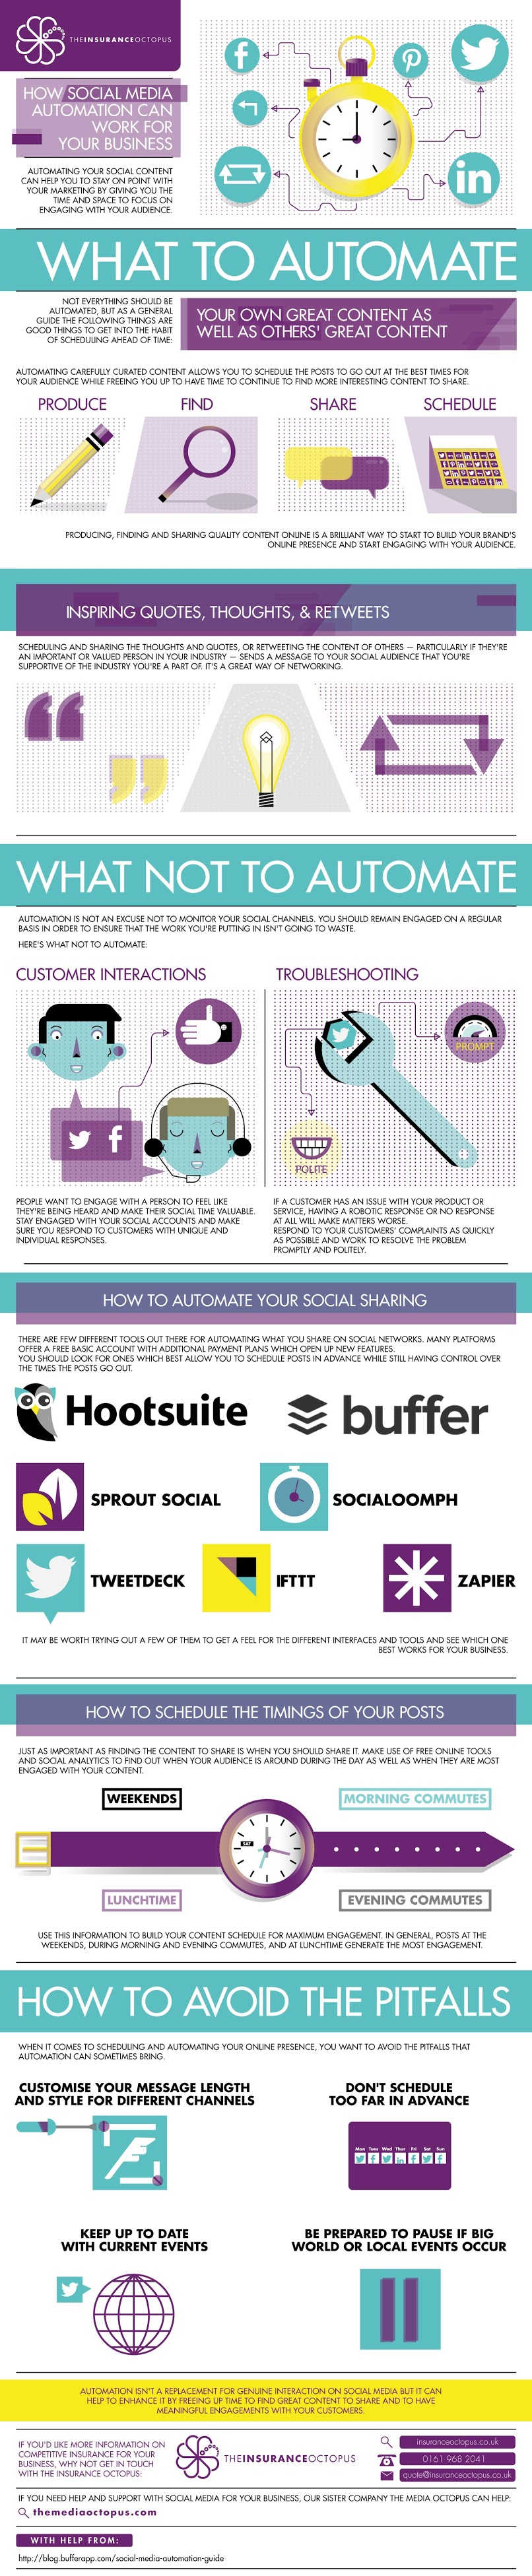 How Facebook, Twitter, Google+ Content Automation Can Work For Your Compnay - #infographic